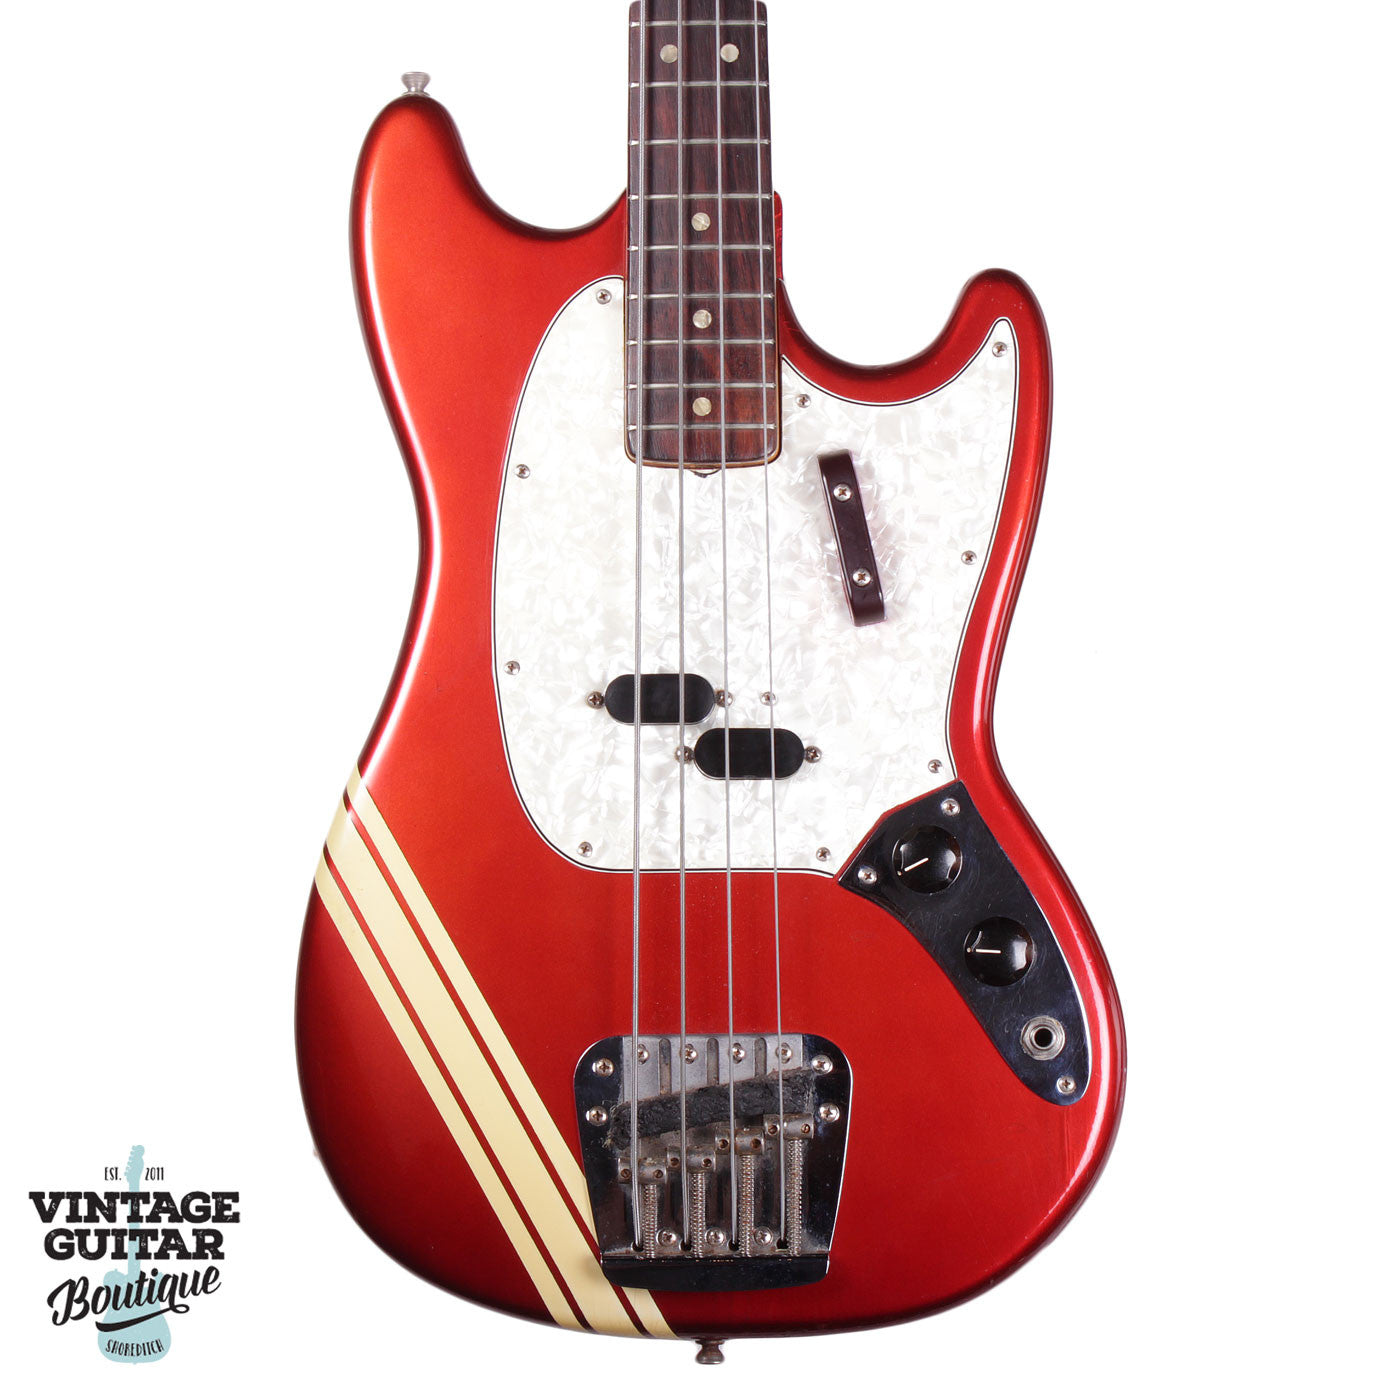 1973 Fender Mustang Bass - Comp Stripe - Candy Apple Red - Vintage Guitar Boutique - 1